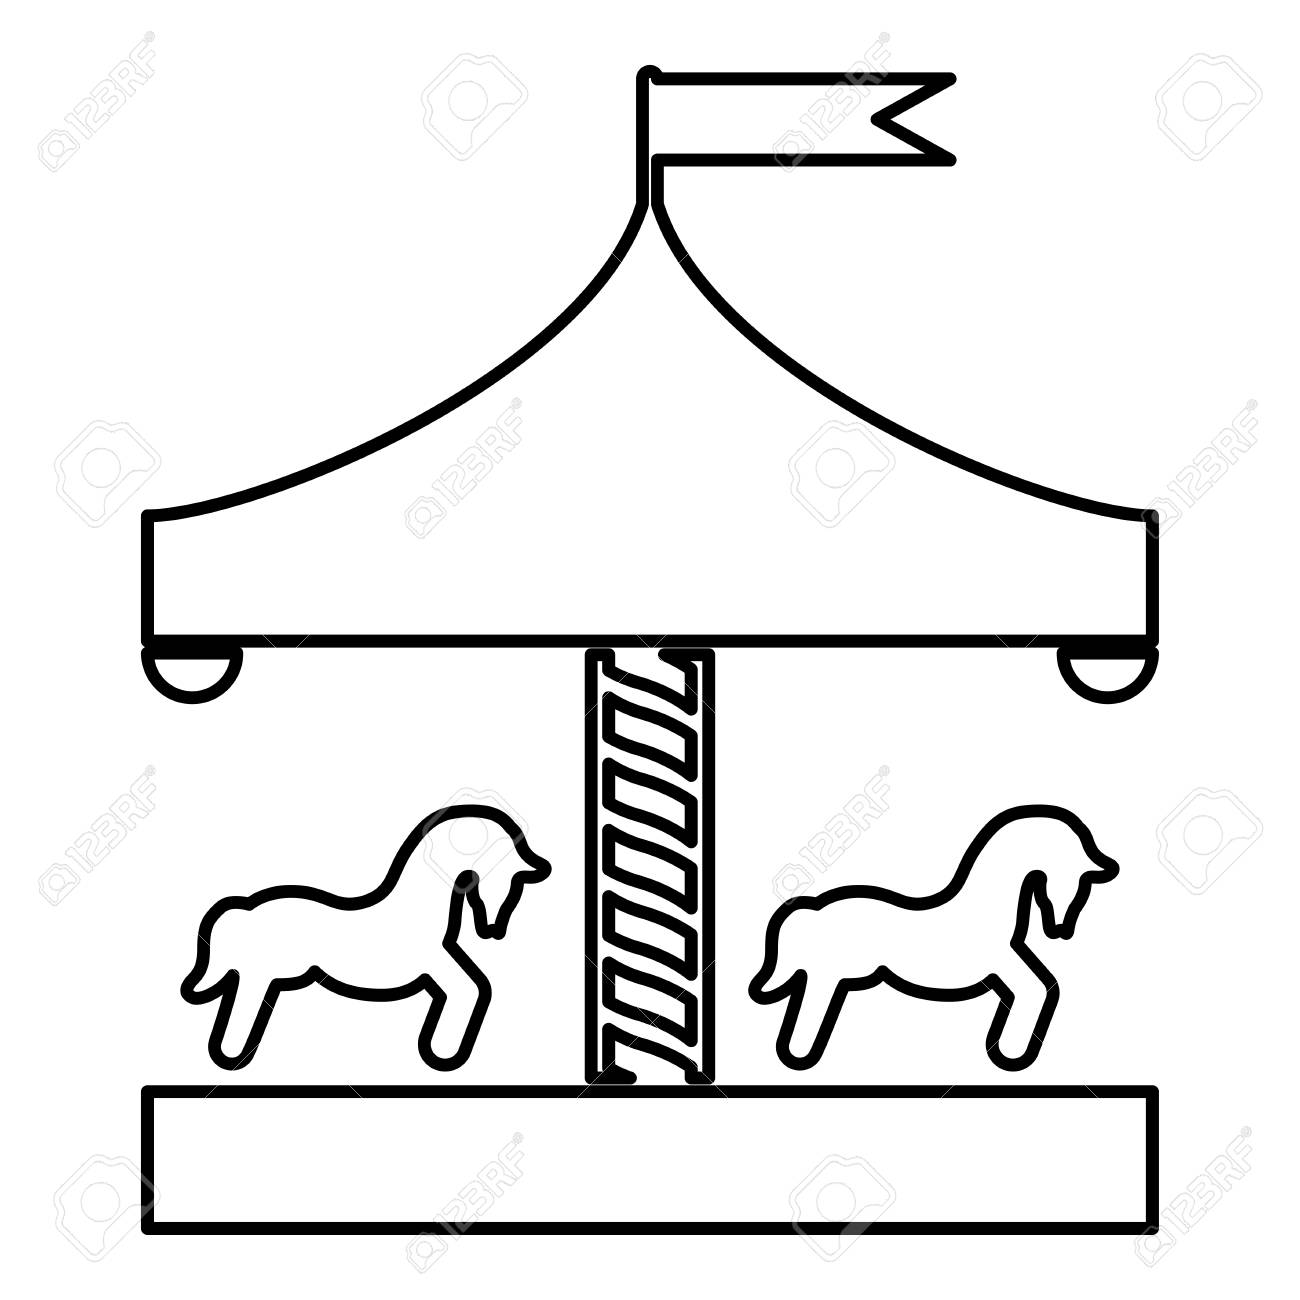 Carousel Roundabout Merry Go Round Vintage Merry Go Round Icon Royalty Free Cliparts Vectors And Stock Illustration Image 124610257